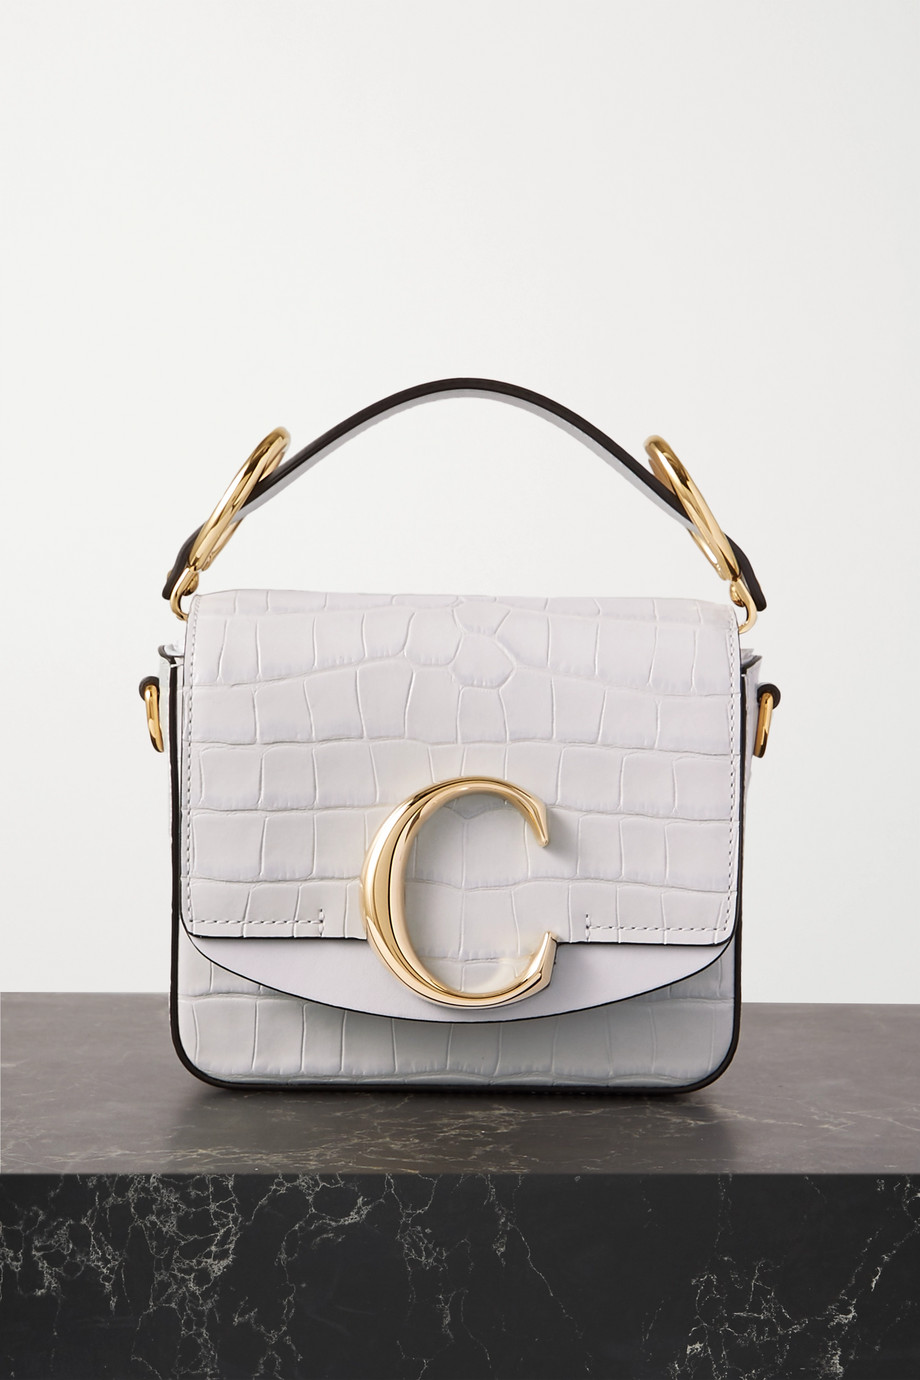 Chloé C mini croc-effect leather shoulder bag